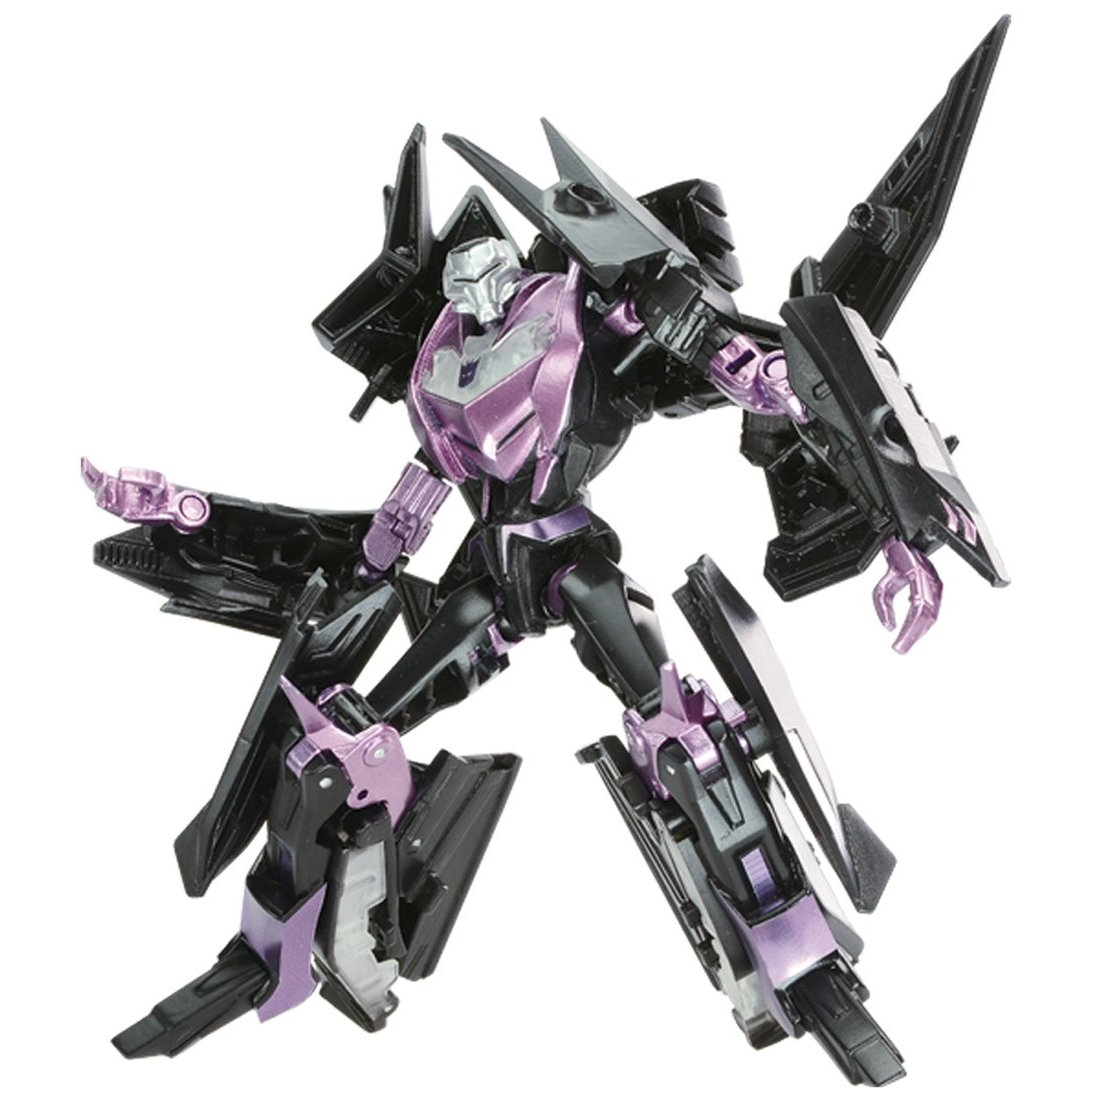 Vehicon (Jet) with Igu jetvehicon02